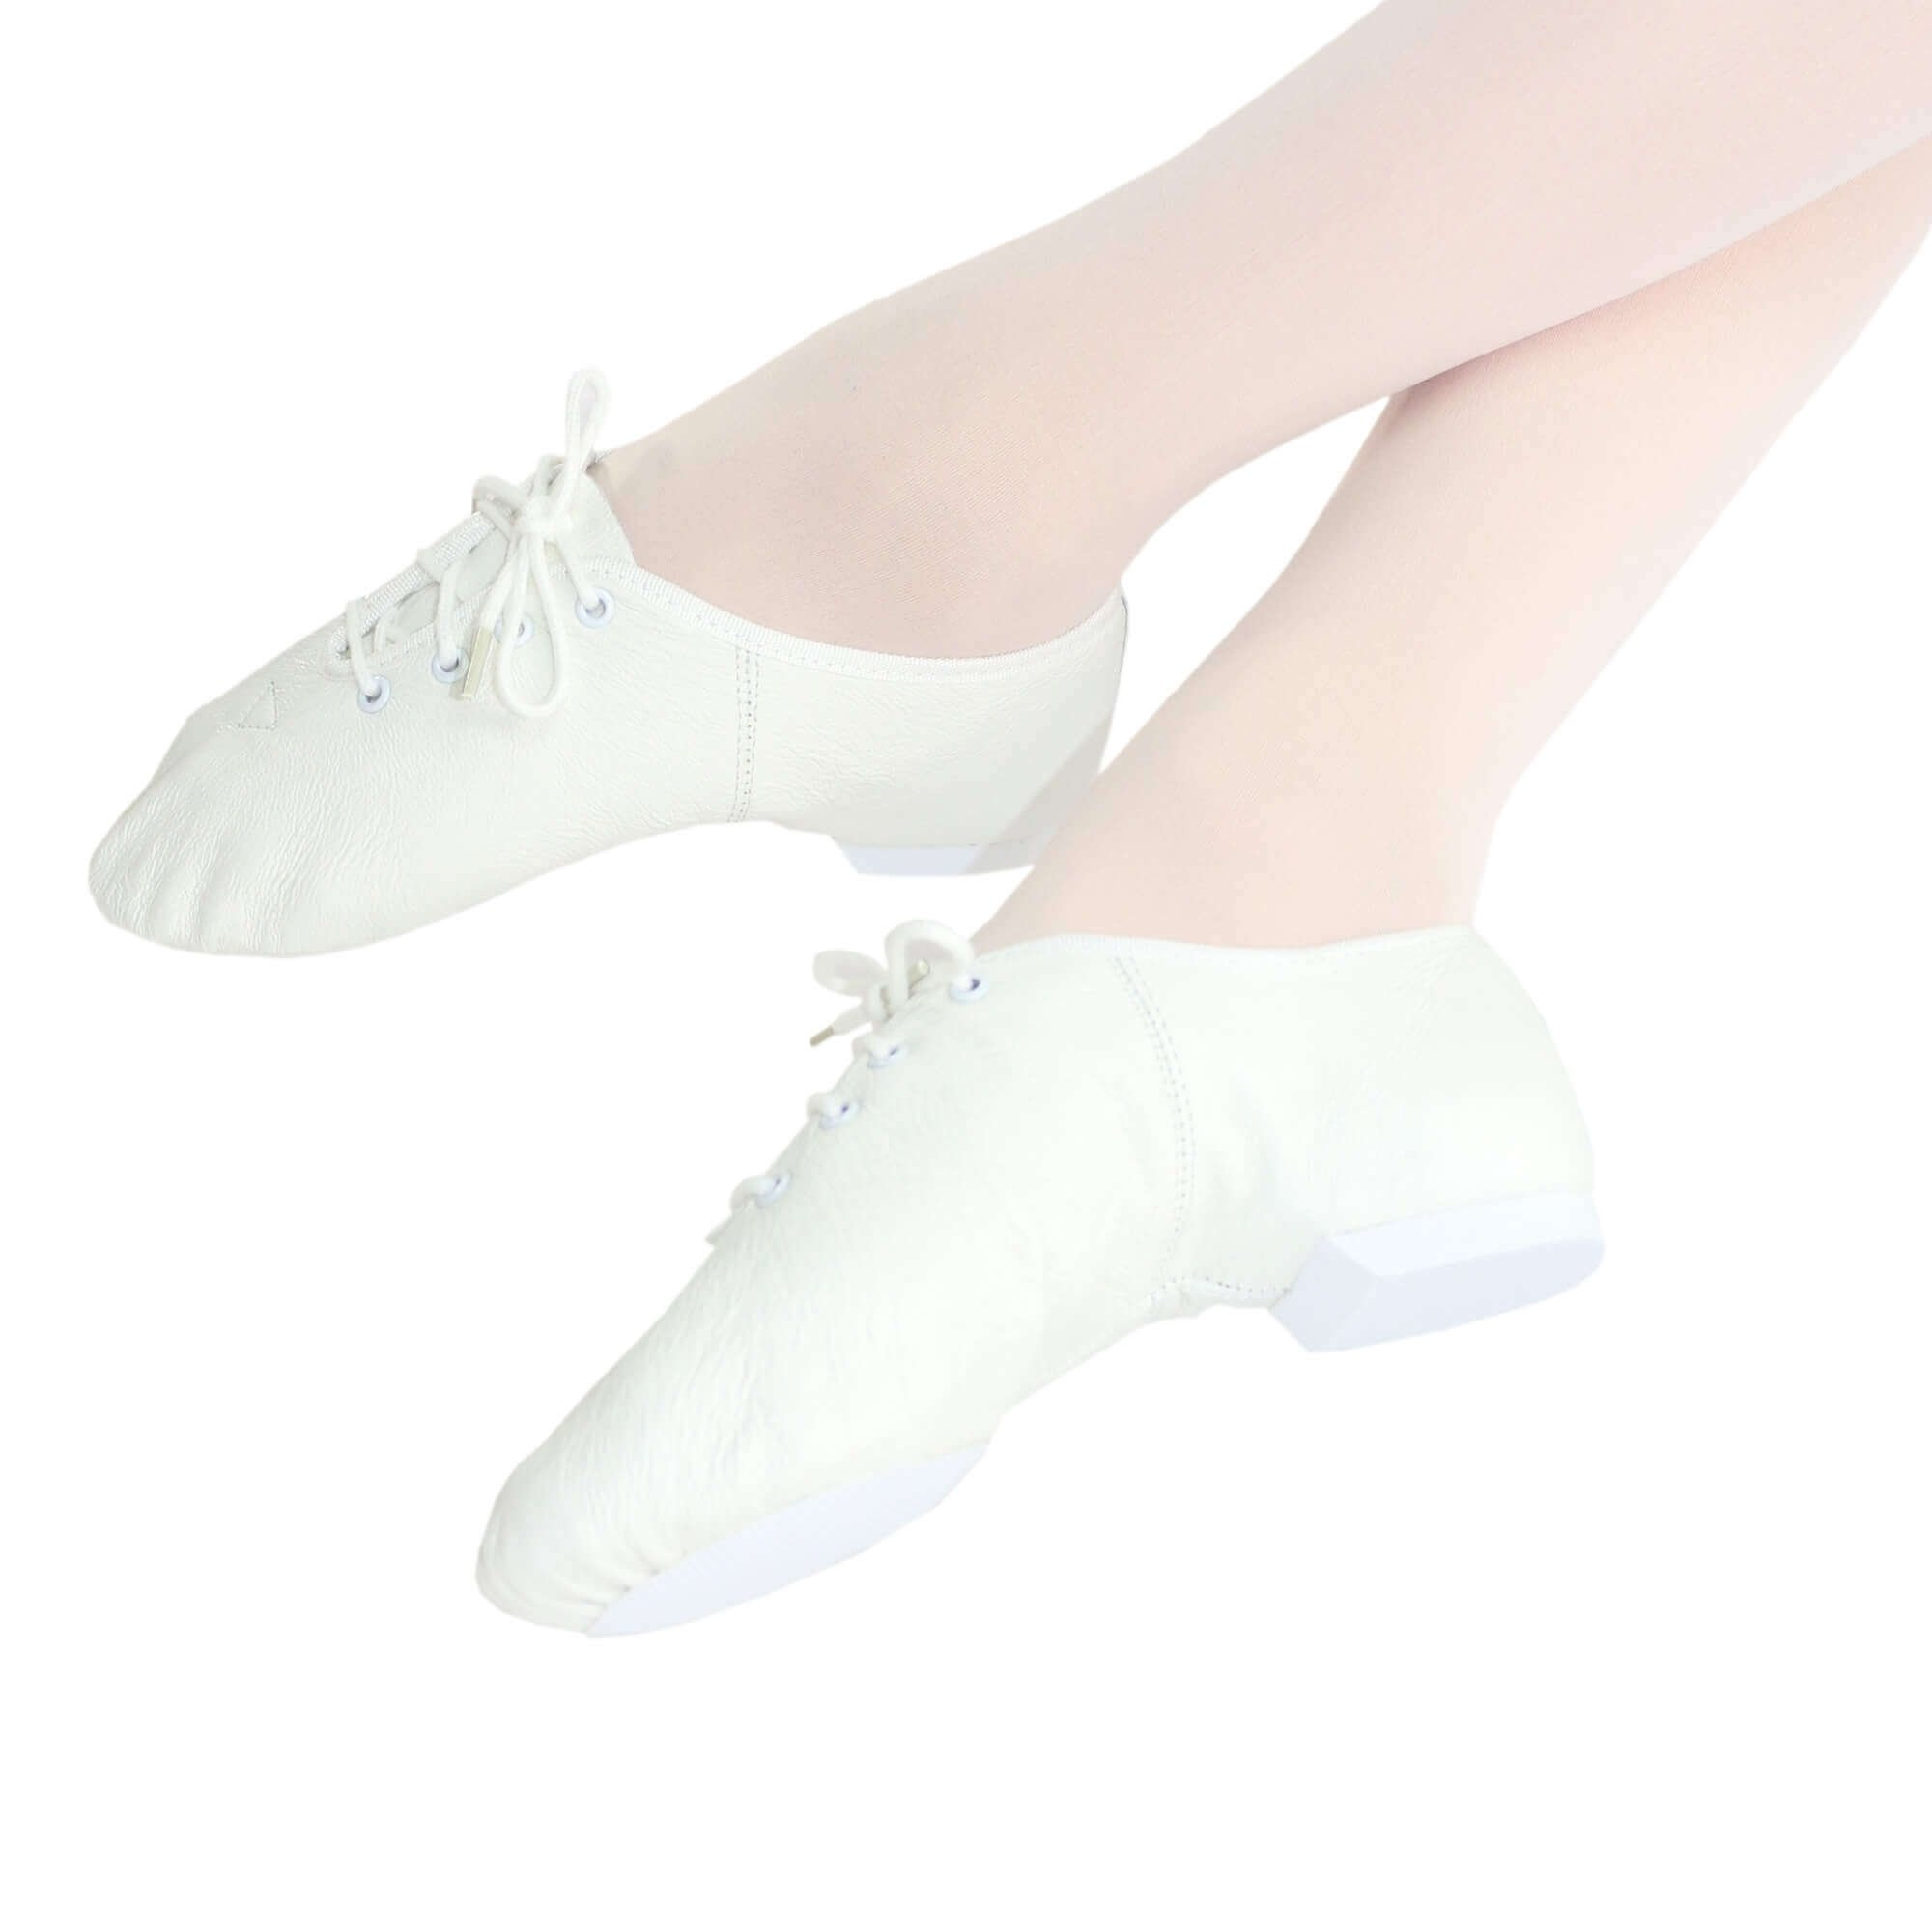 "Danzcue Youth ""Jazzsoft"" Jazz Shoes"